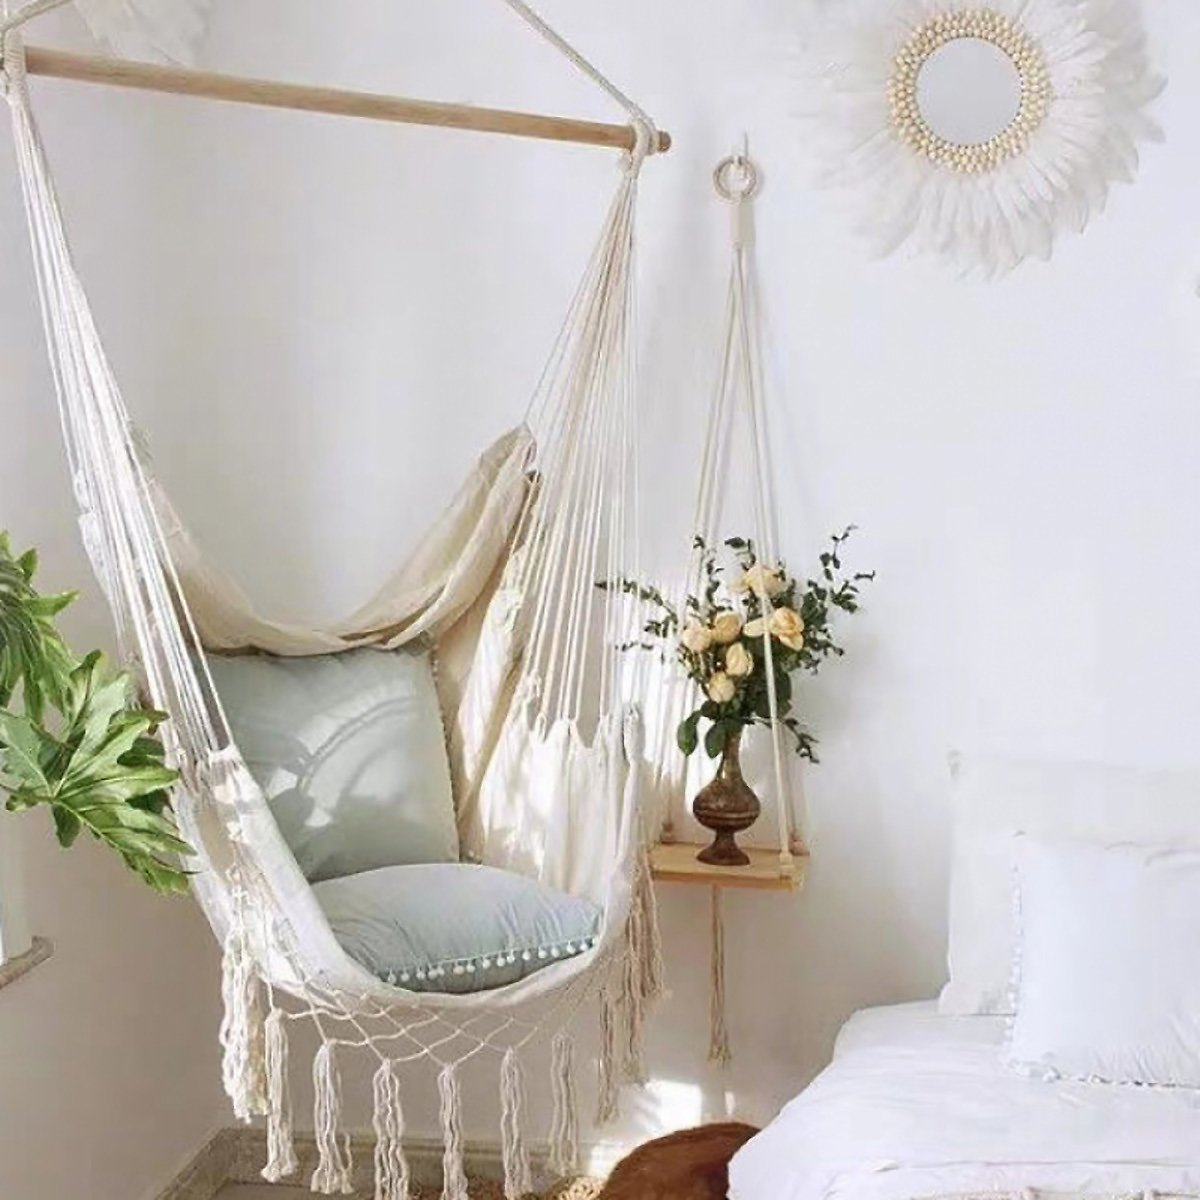 Hammock Chair Relax Hanging Macrame Swing Chair Cotton Weave for Superior Comfort & Durability Perfect for Indoor/Outdoor Home B